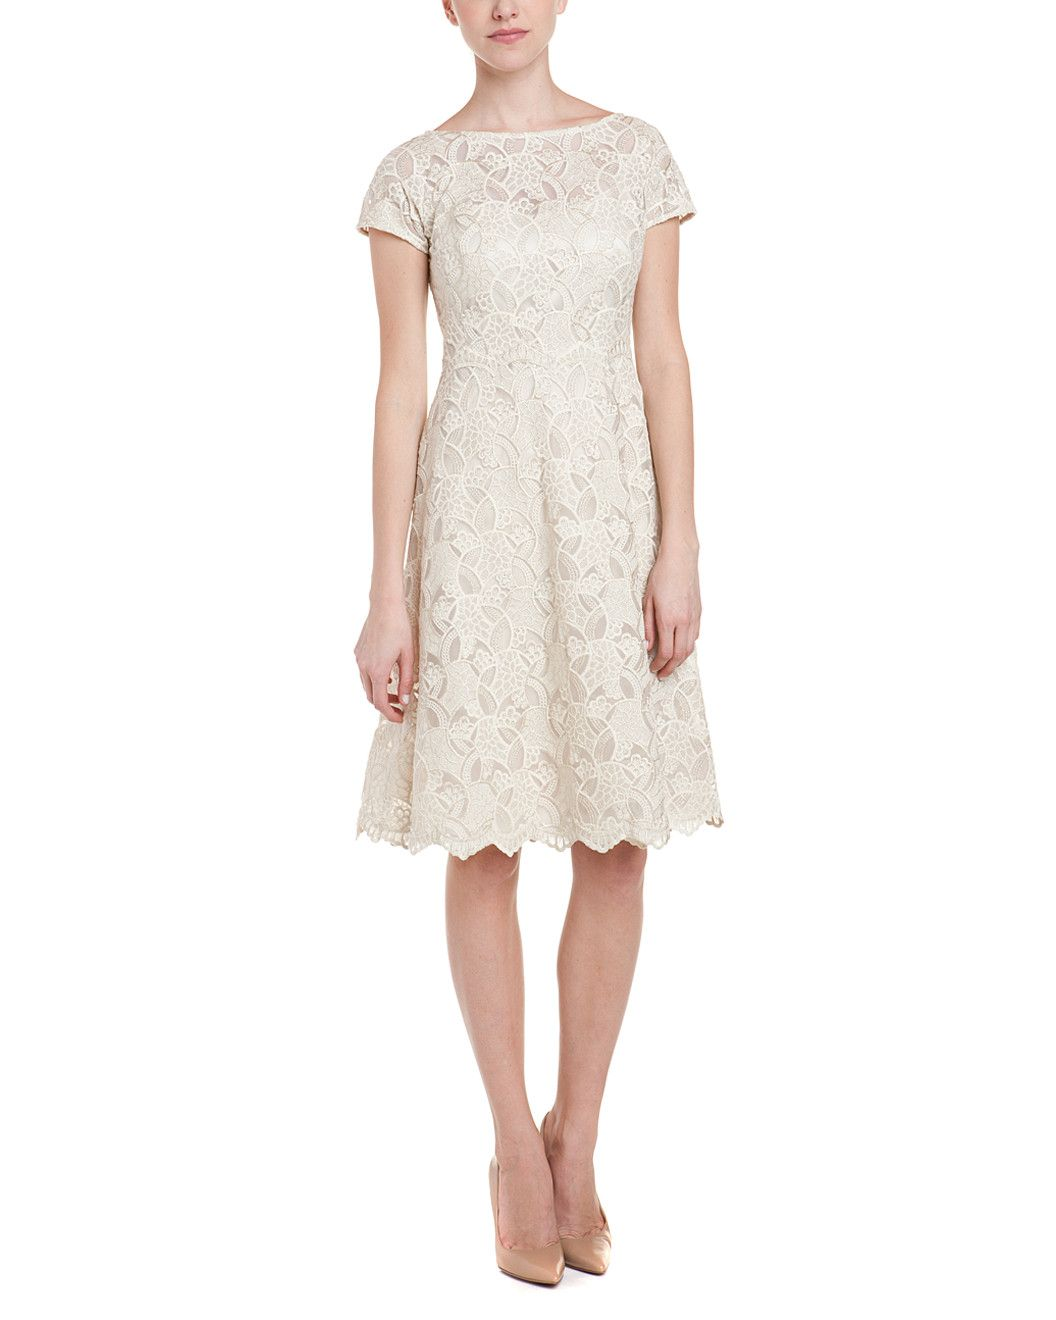 Spotted this teri jon by rickie freeman ivory lace fit u flare dress